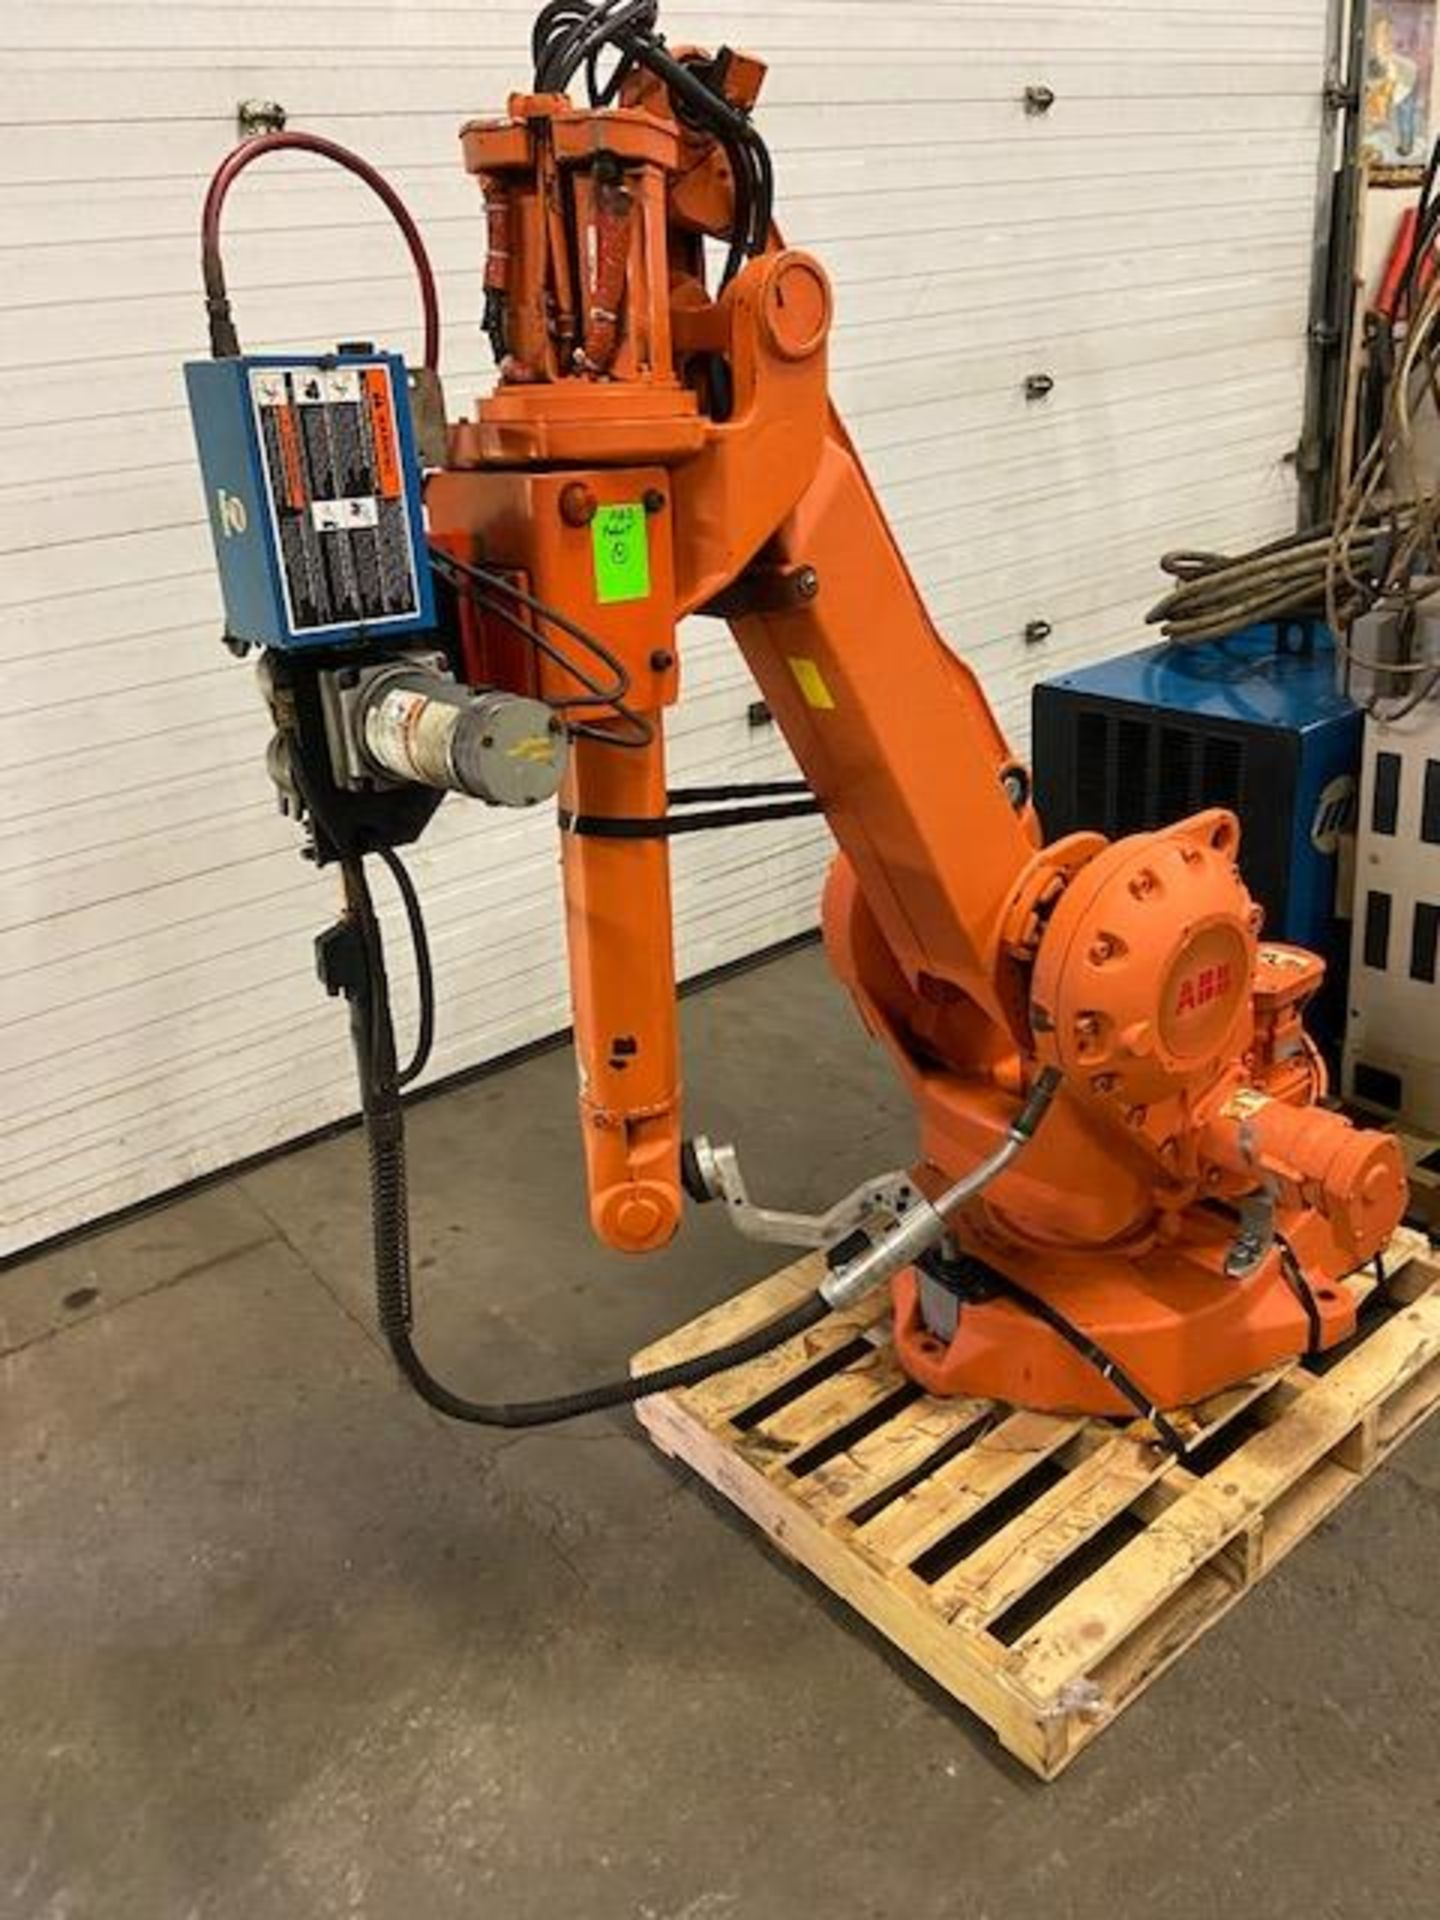 ABB IRB 2400 Robotic Weld Package w/ IRB2400 M2000 Controller, Miller Robotic Interface and Miller - Image 4 of 6